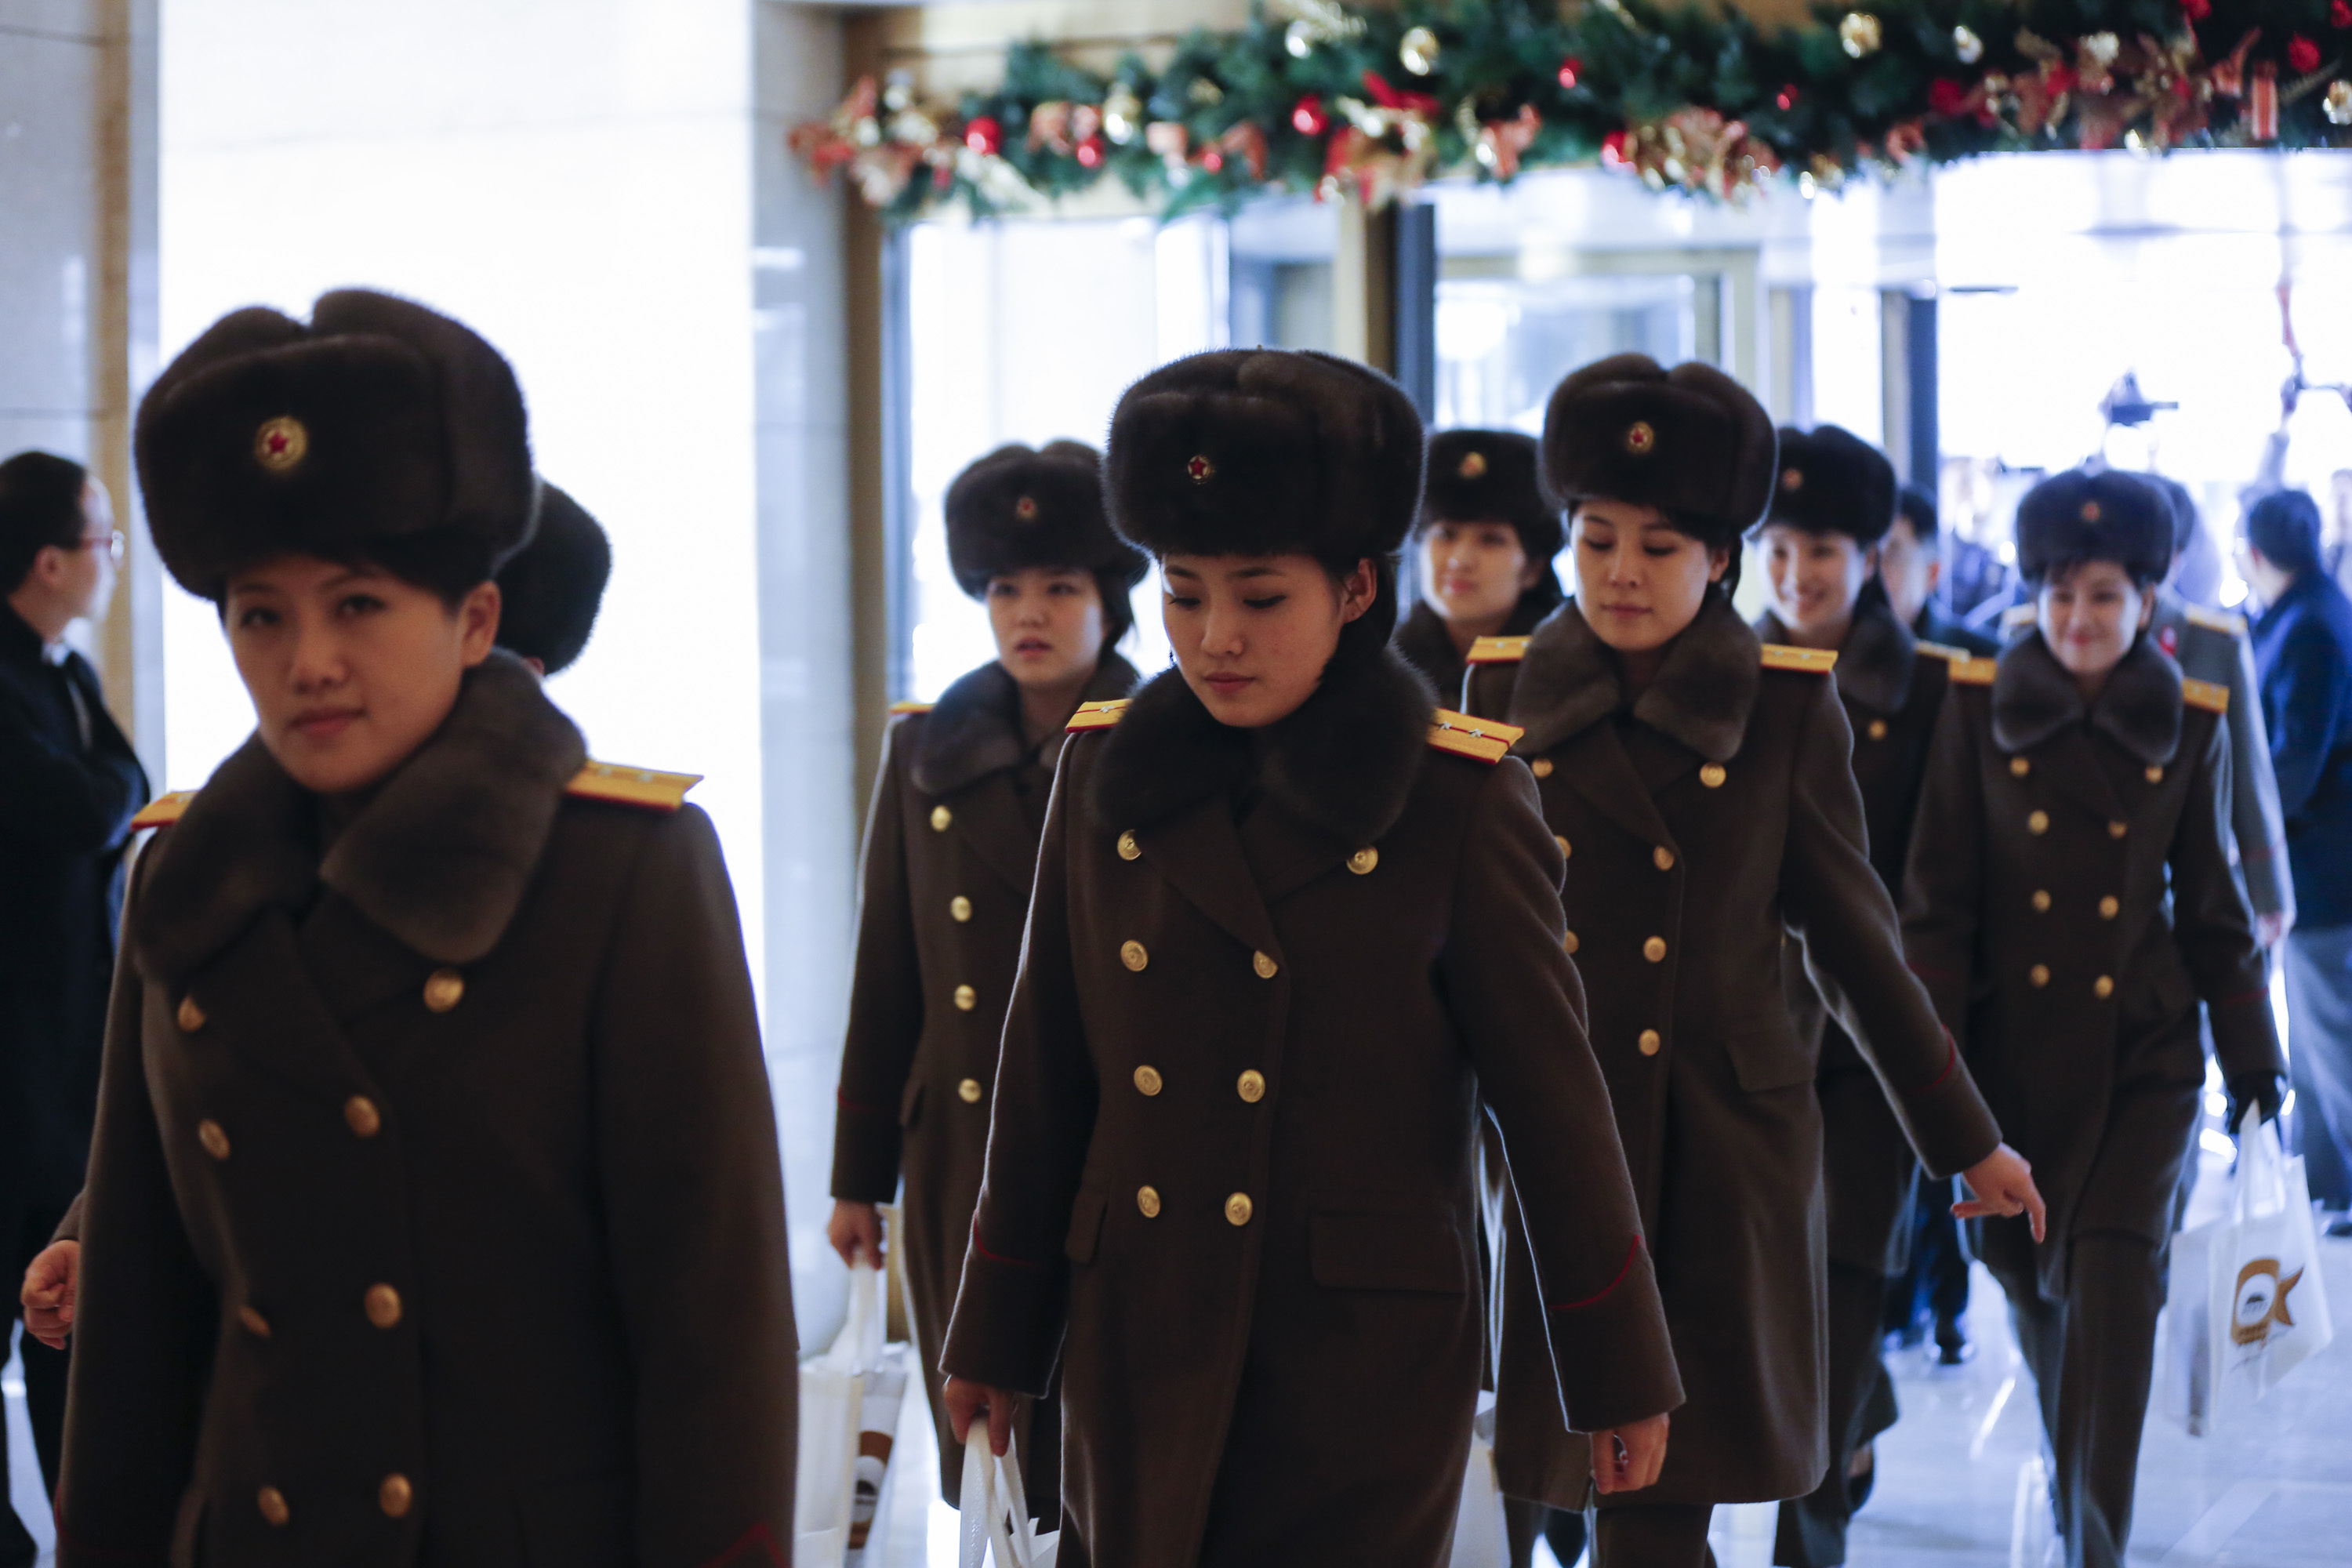 BEIJING, CHINA - DECEMBER 11: (CHINA OUT) Members of the North Korean female music group Moranbong Band arrive at a hotel after concert rehearsal on December 11, 2015 in Beijing, China. The Moranbong Band will perform at the National Centre for the Performing Arts from December 12 to 14. (Photo by ChinaFotoPress)***_***